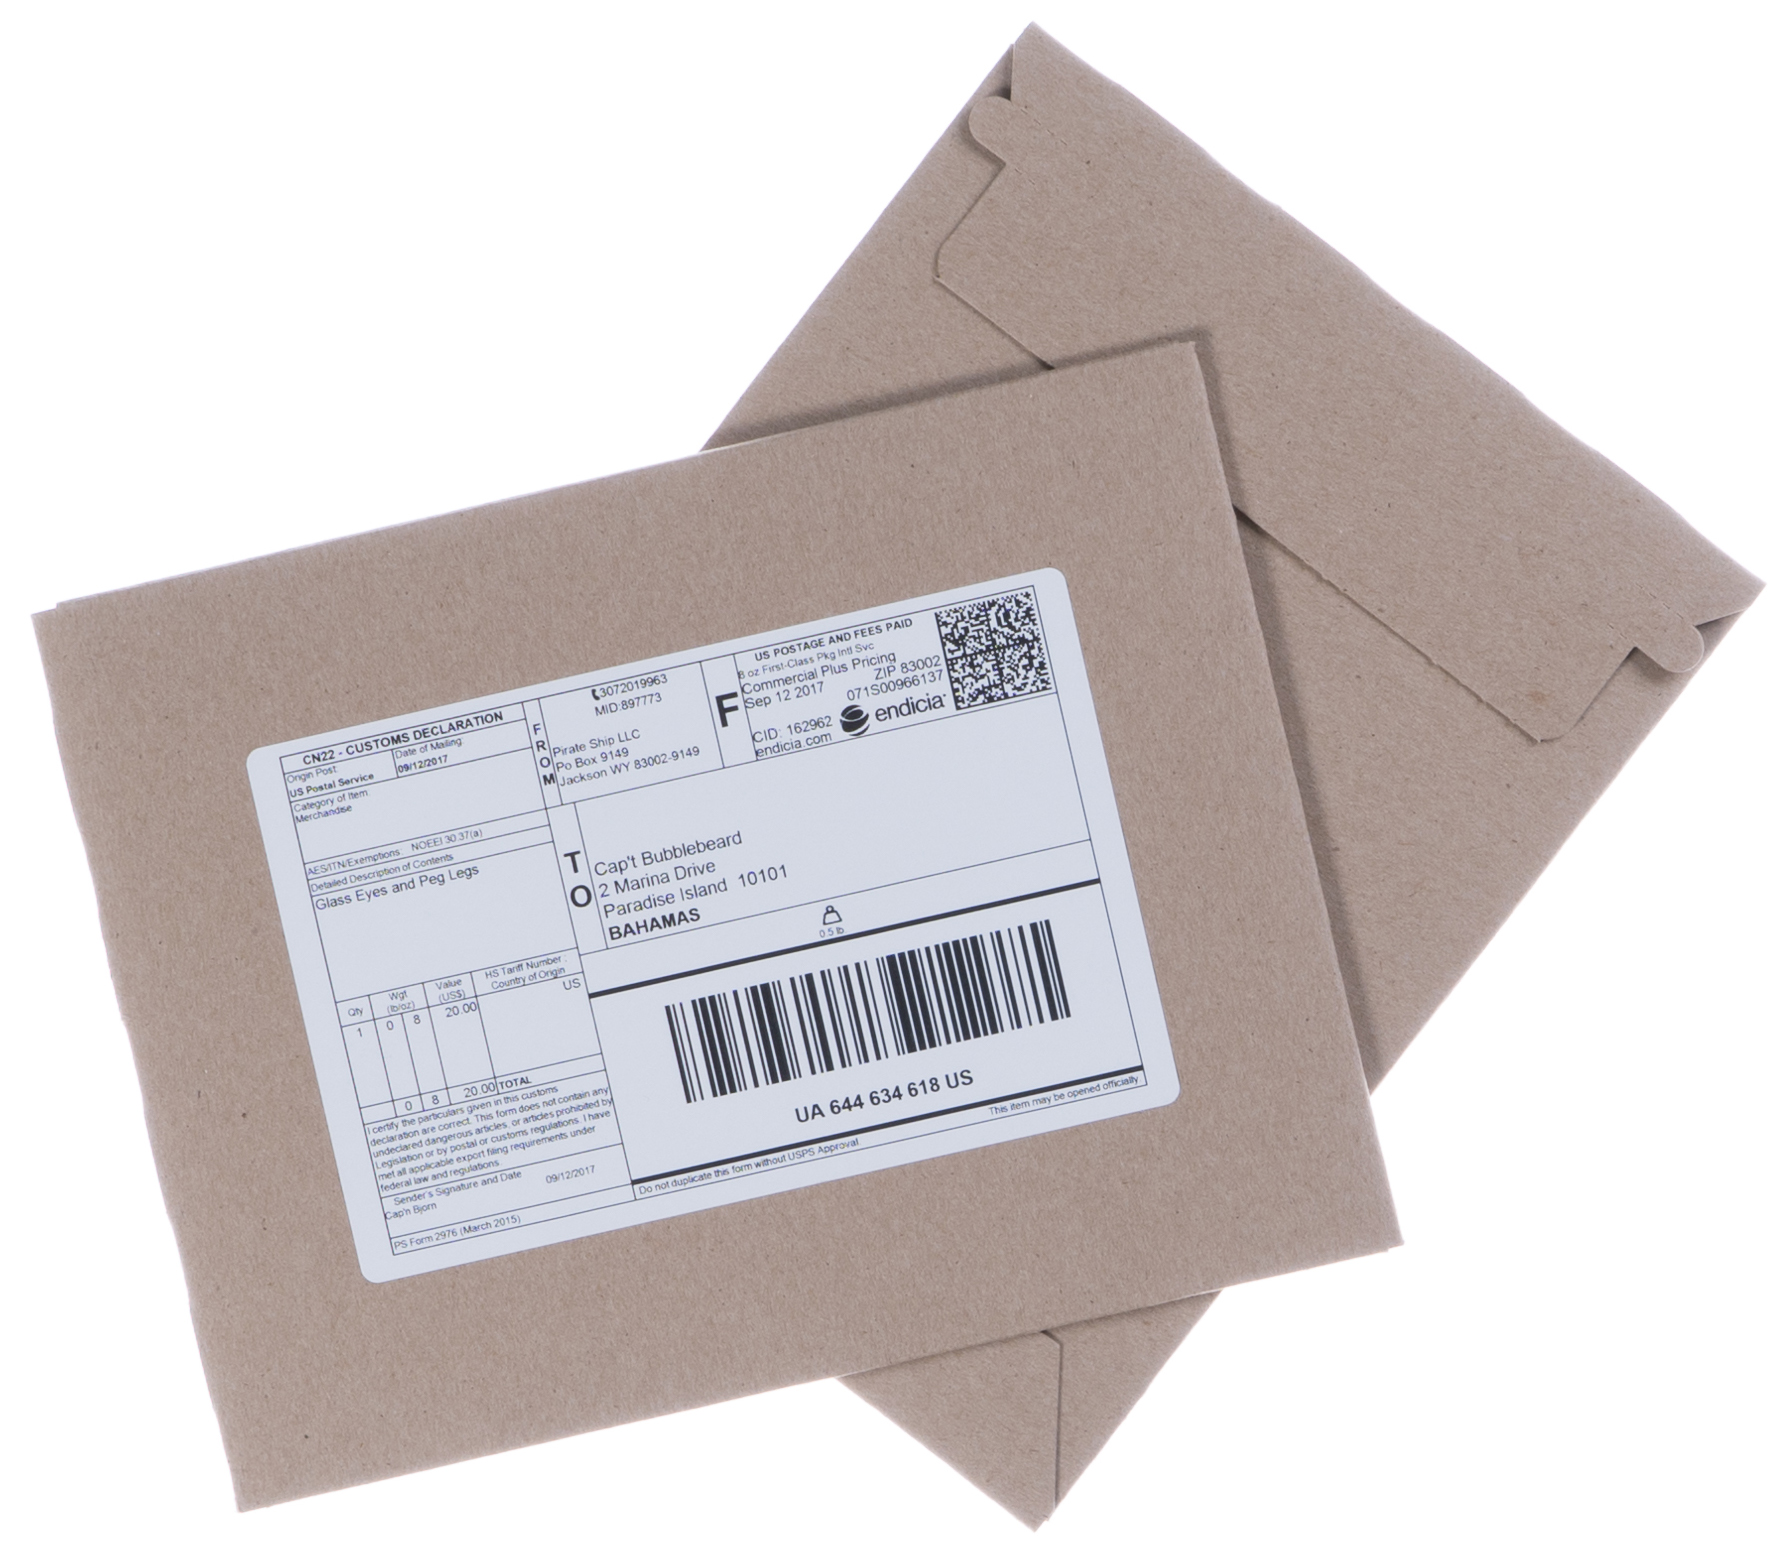 USPS First Class Package envelopes